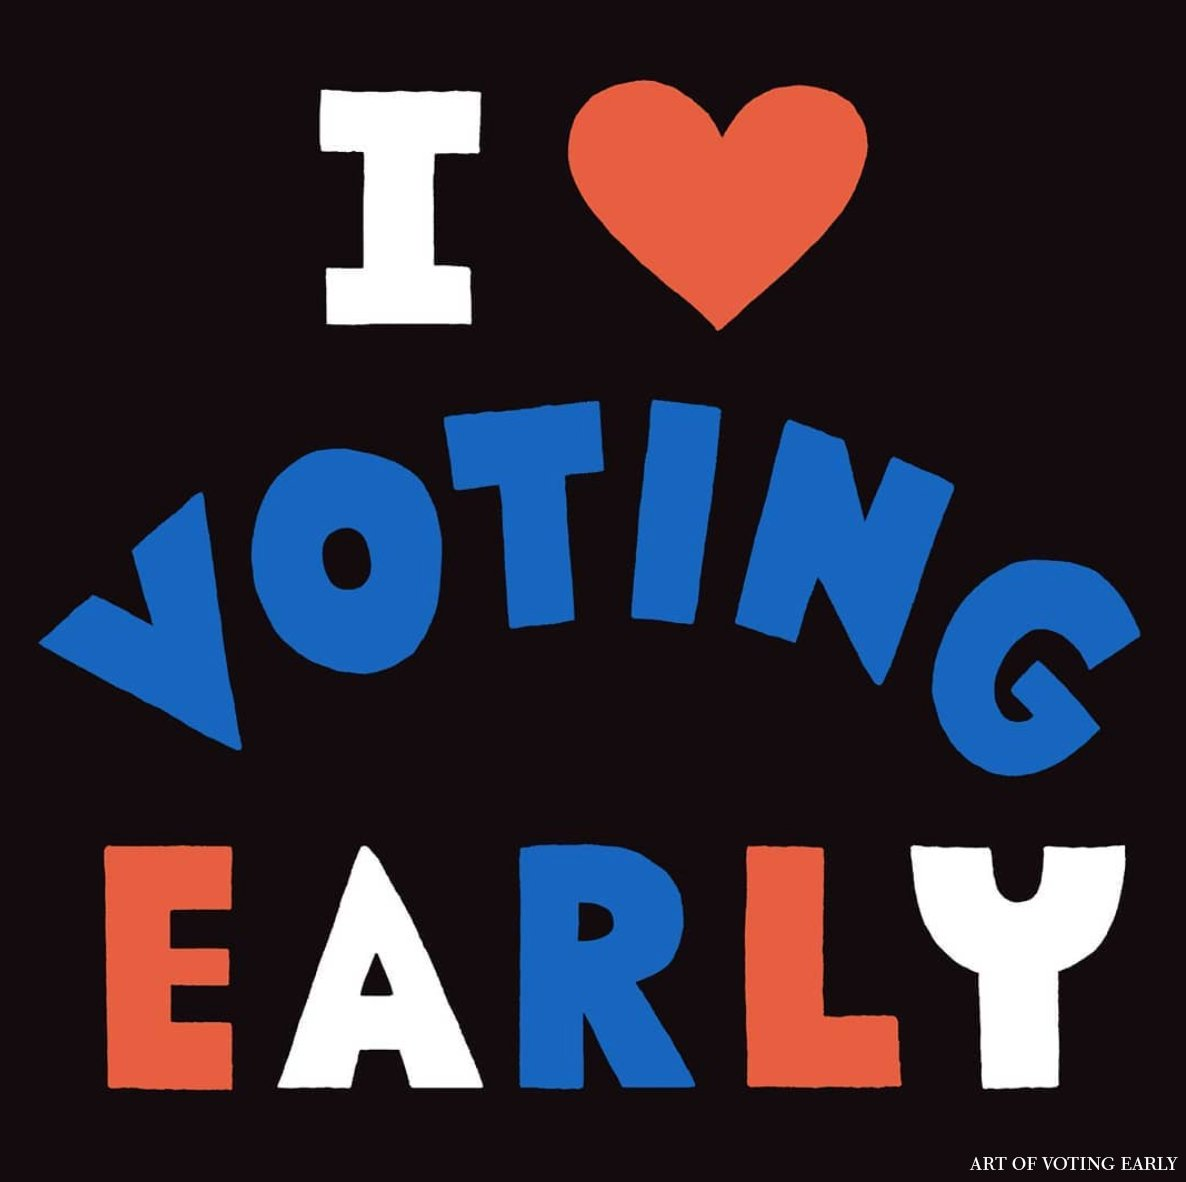 Tomorrow is the first-ever @VoteEarlyDay. Its a great time to go vote early, return your mail-in ballot, or make a plan for how youll vote as early as you can. Go to VoteEarlyDay.org to learn about the options in your state, and tell a friend. #VoteEarlyDay